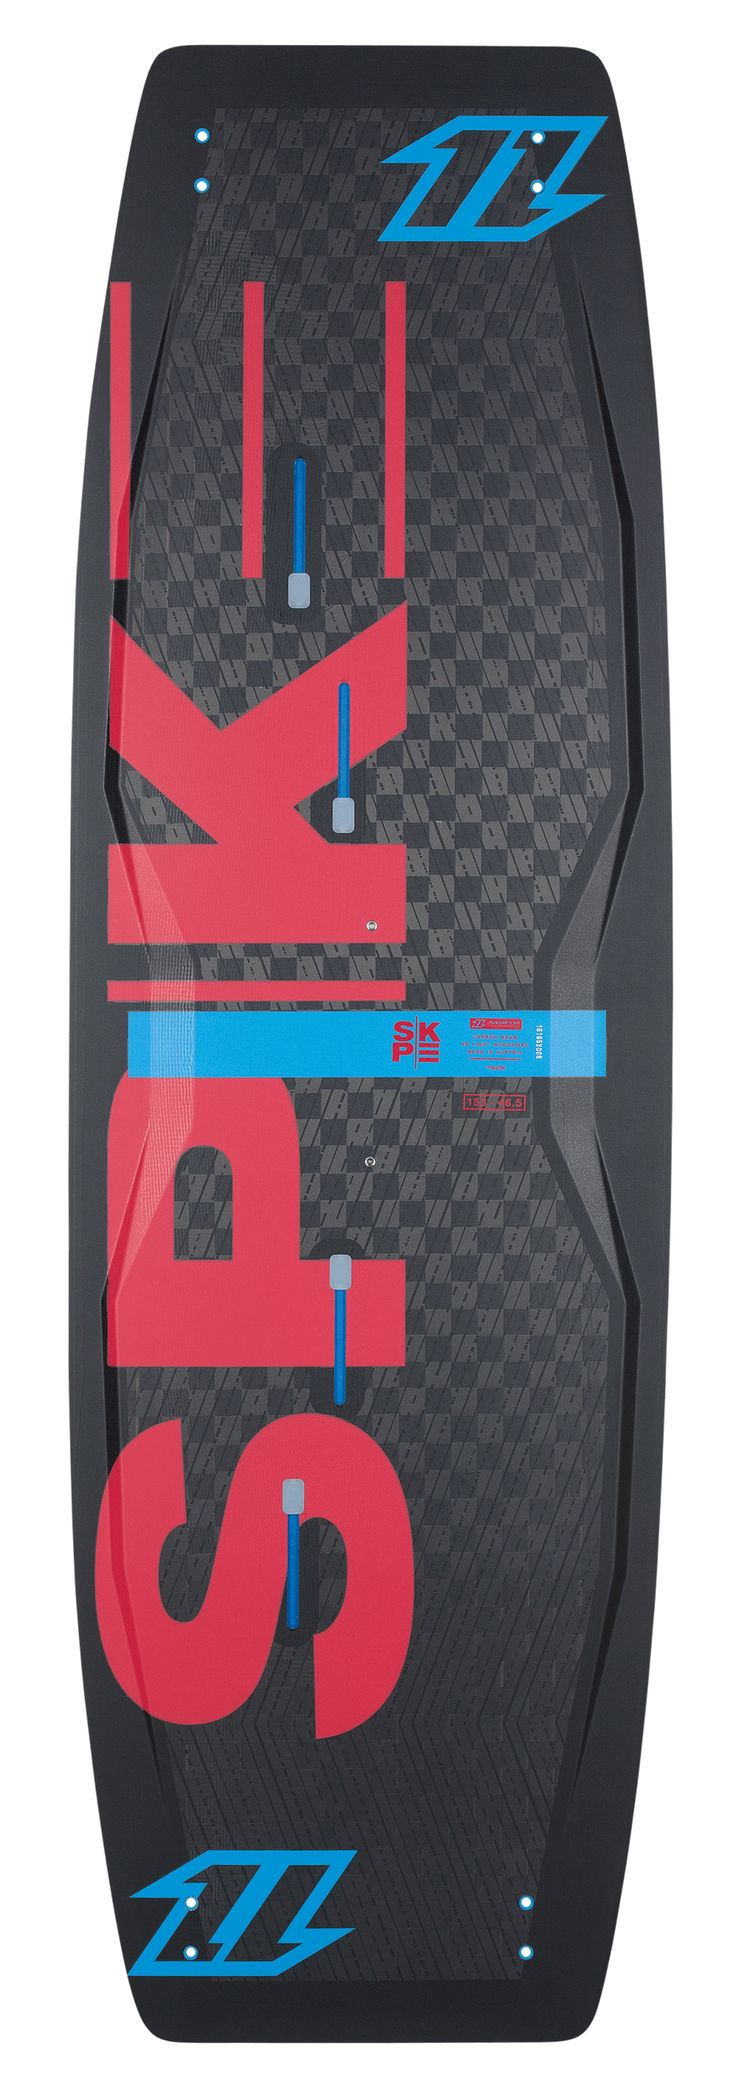 North Kiteboarding have been using TeXtreme® Spread Tow carbon fiber fabrics for several years to reduce weight and improve mechanical performance of their kite boards.  For the 2016 board range North Kiteboarding are using TeXtreme® on two models; Select and Spike TeXtreme.  www.textreme.com